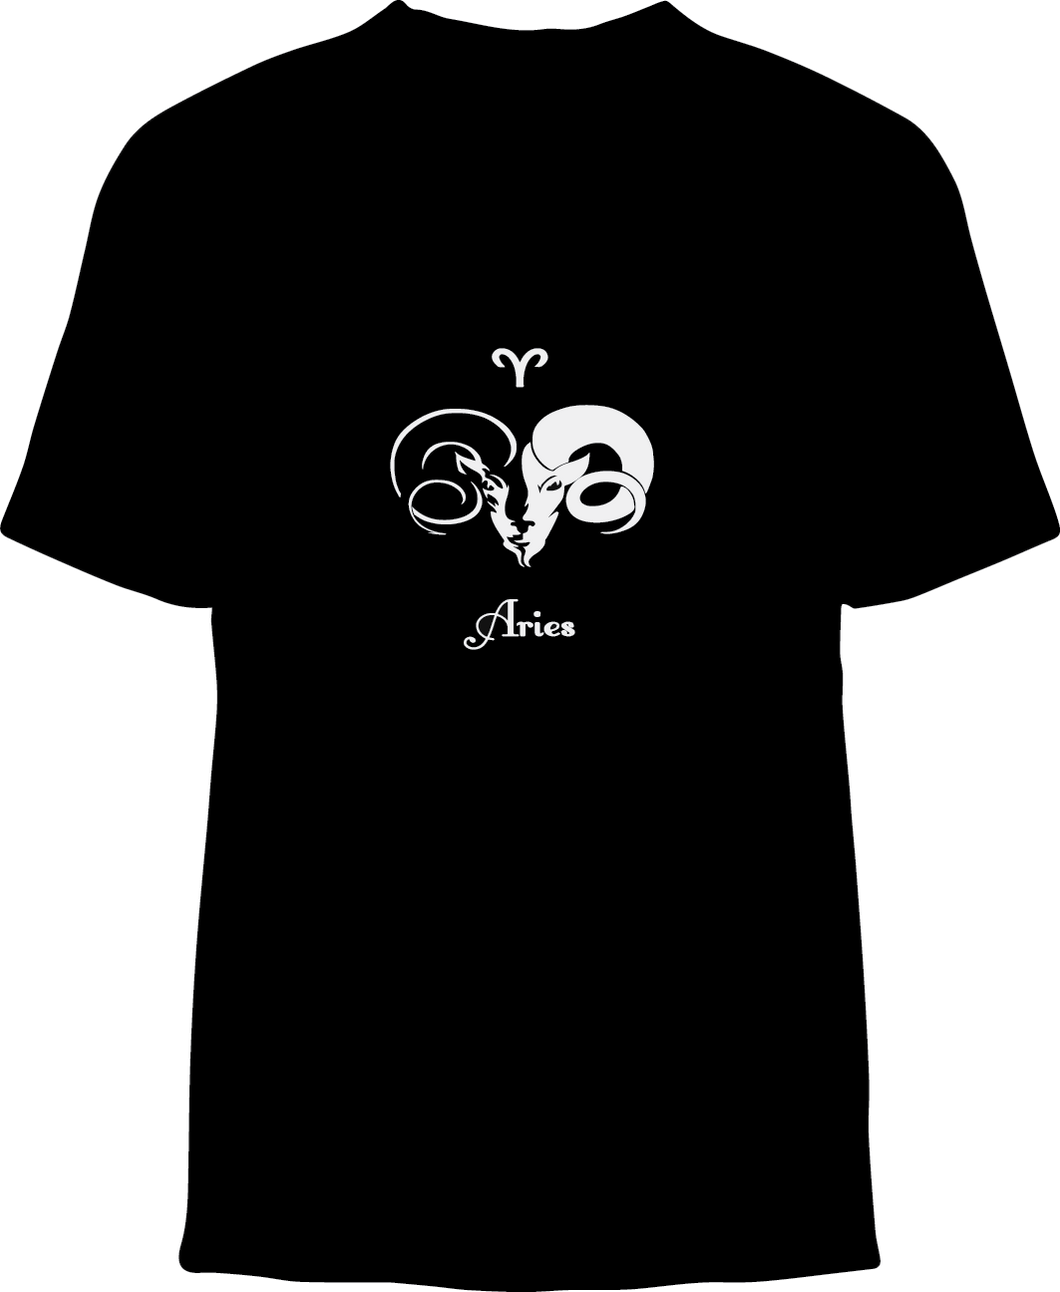 Skelebone Short Sleeve T-shirt, Aries Mar 20 - Apr 19 Front